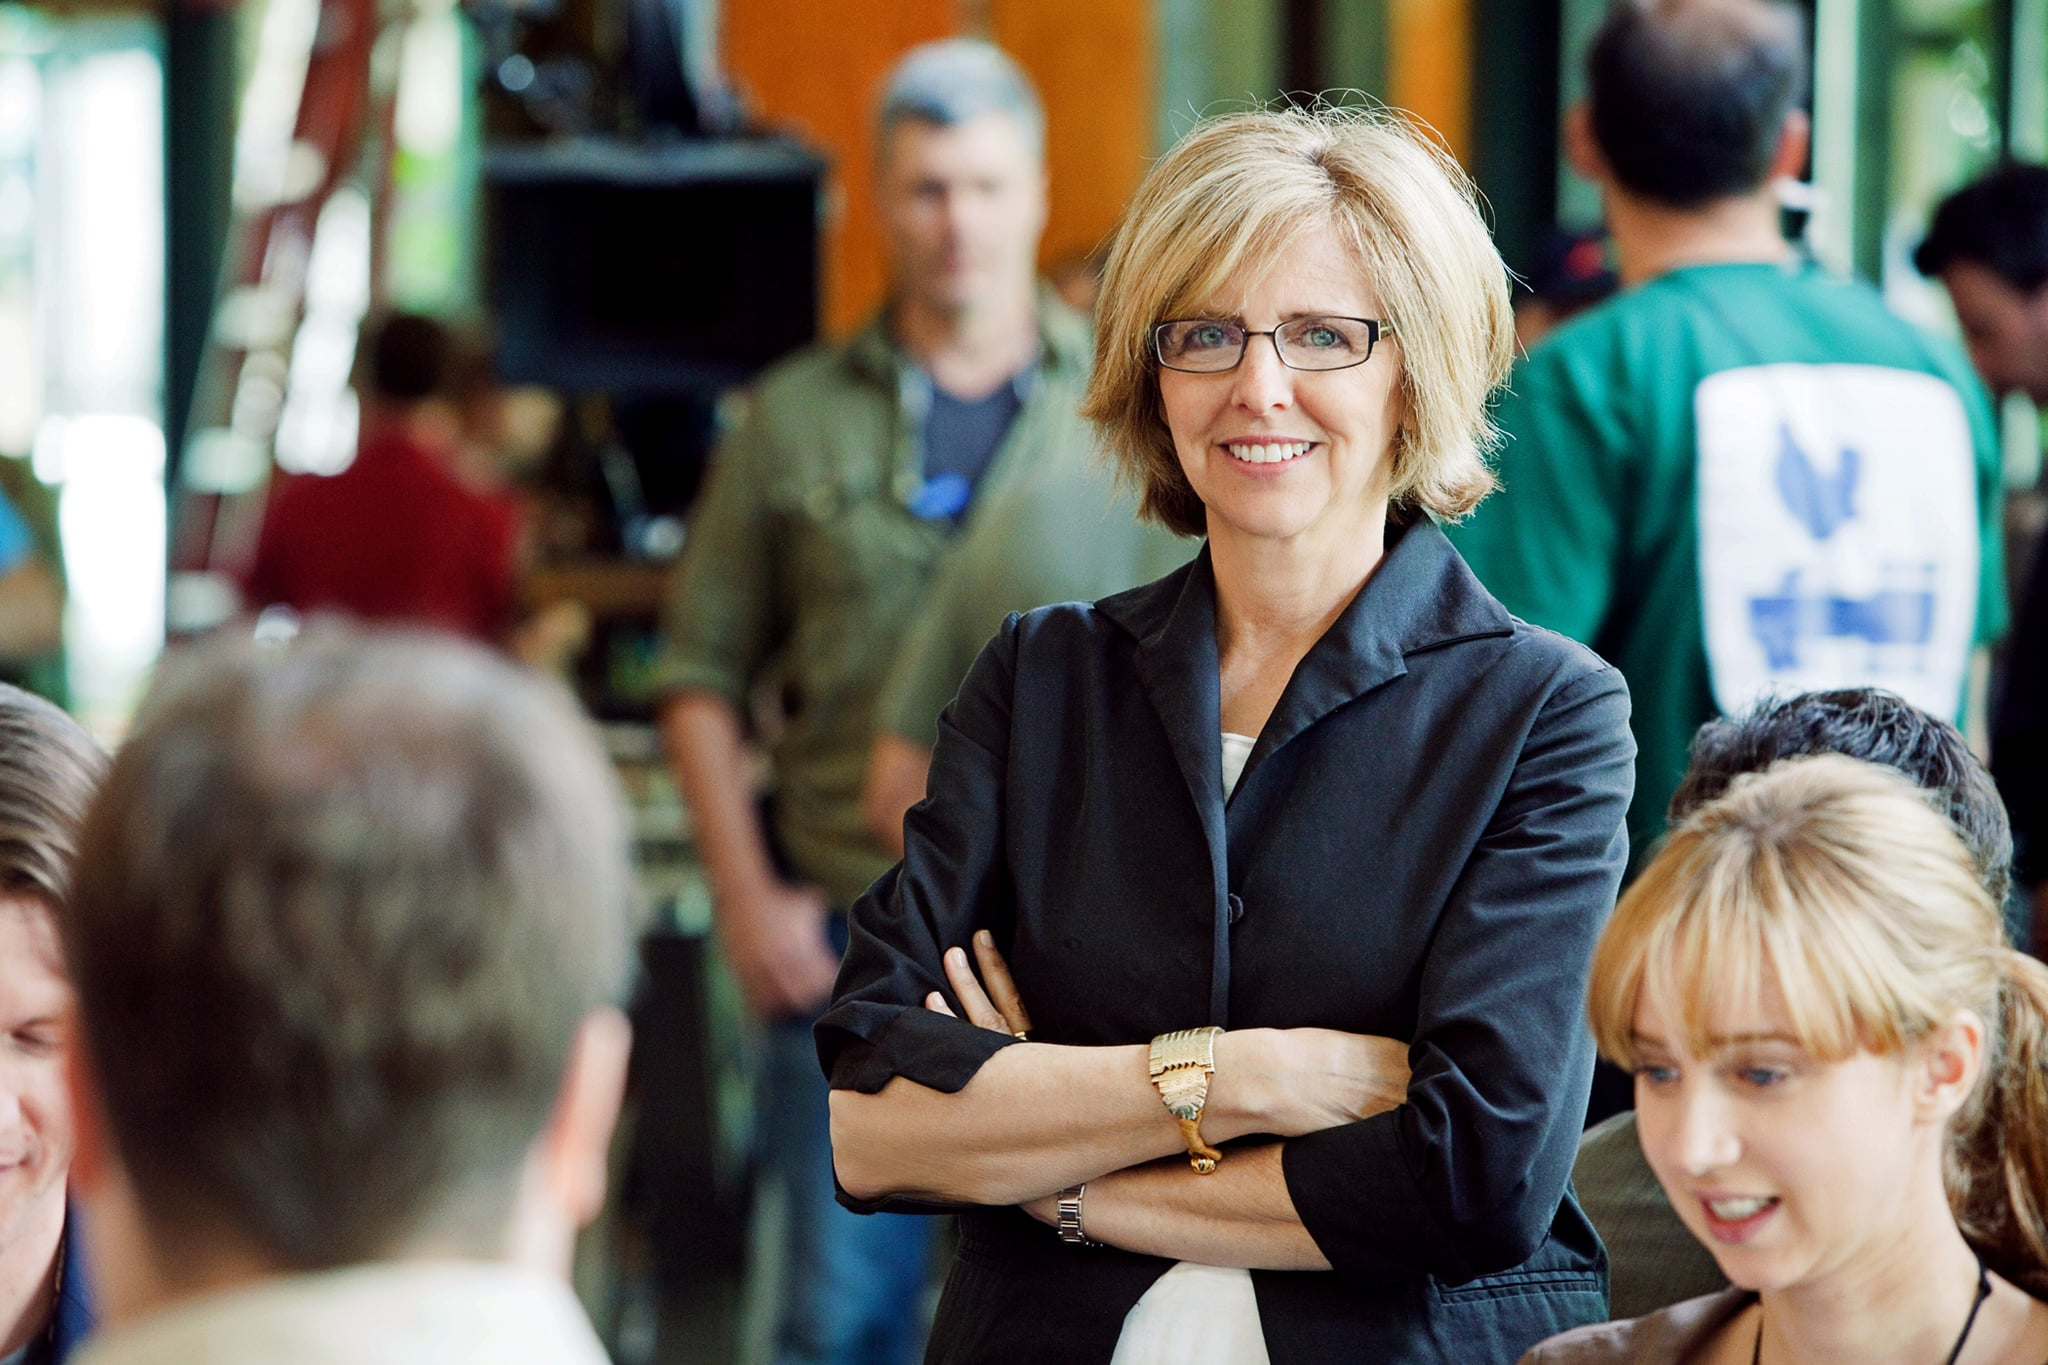 IT'S COMPLICATED, director Nancy Meyers, on set, 2009. Ph: Melinda Sue Gordon/Universal/Courtesy Everett Collection